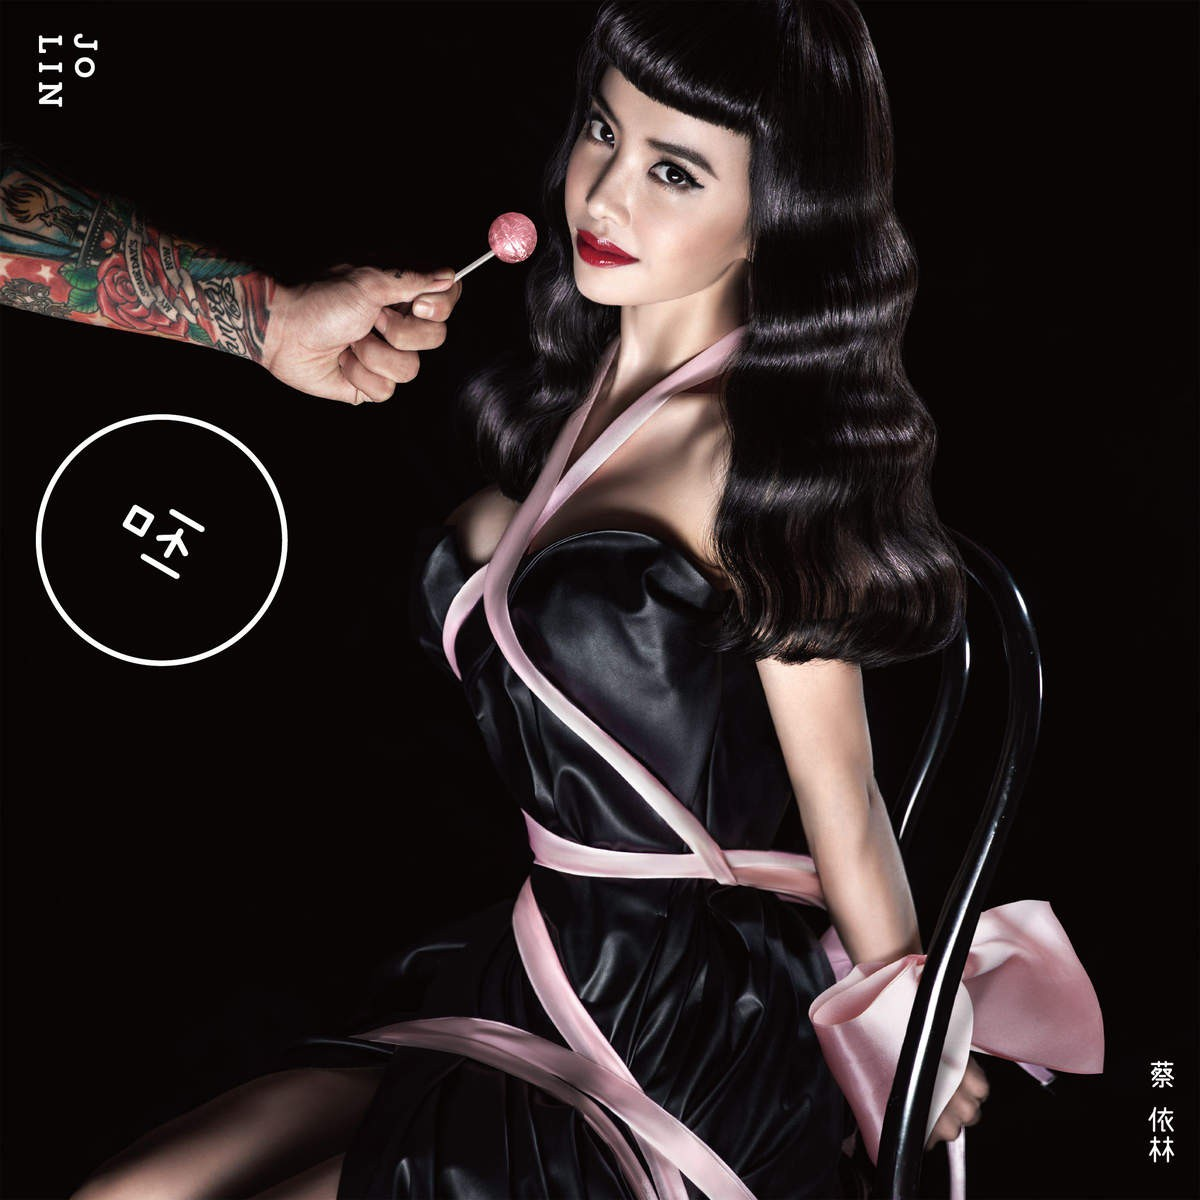 20151201.01 Jolin Tsai - Play (album) cover 3.jpg